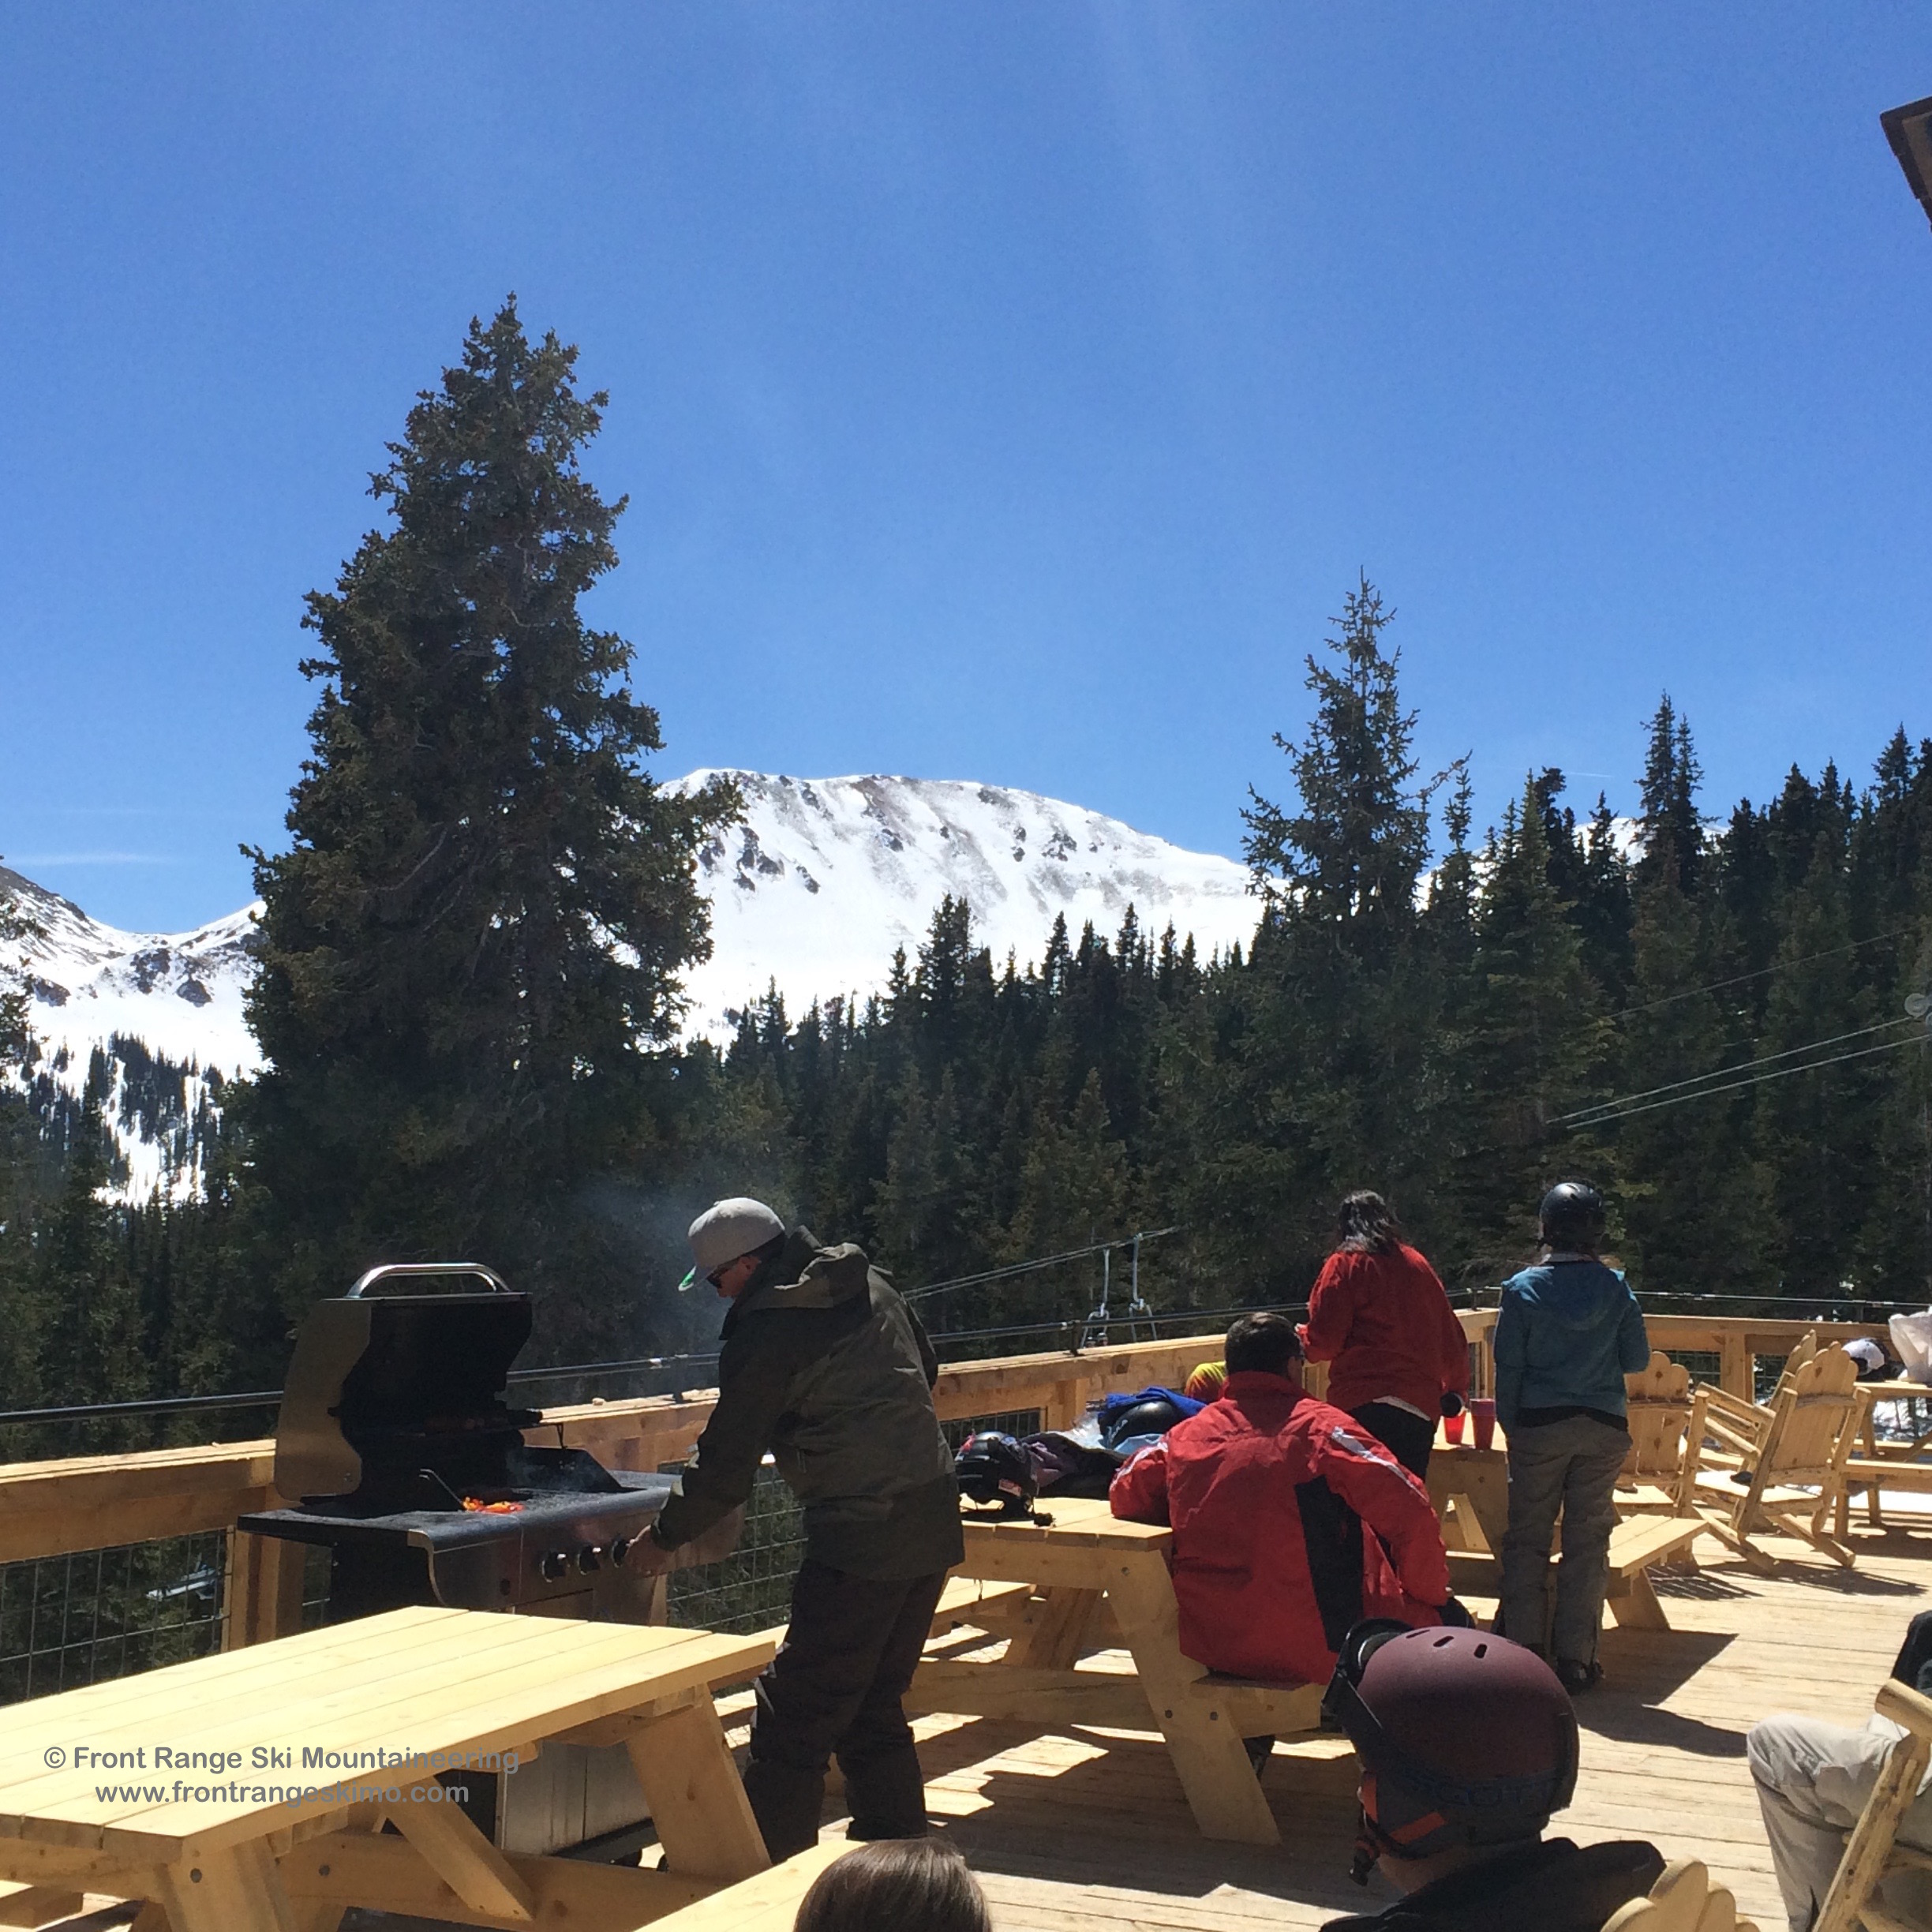 Grilling at Loveland Ski Area's Ginny Lee Cabin with the North Face of No Name in the background.